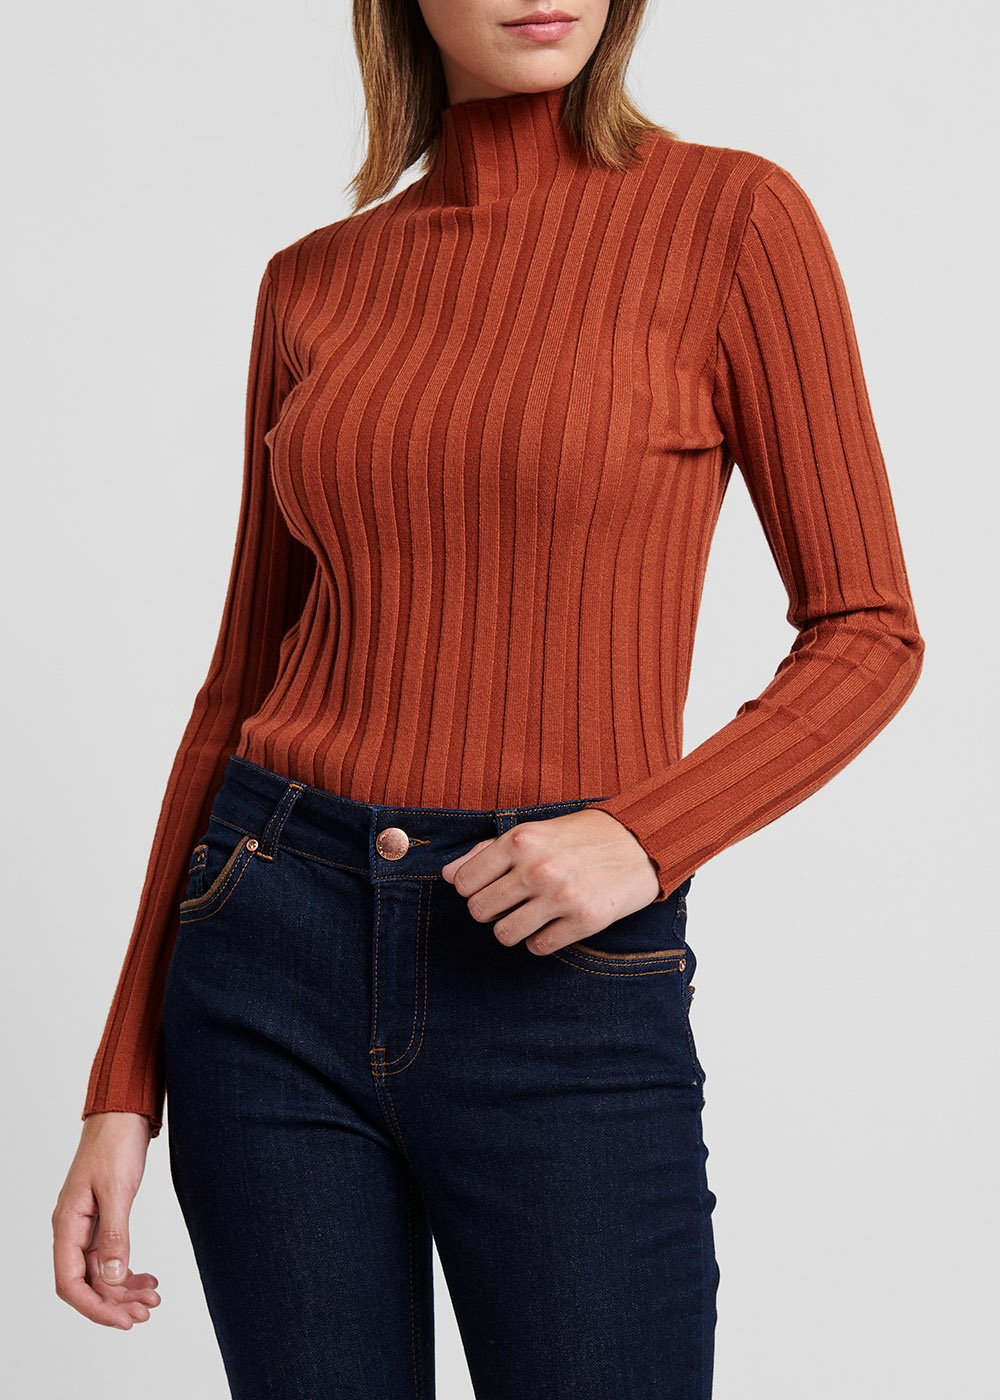 Rust - colored turtleneck sweater with ribs - Ruggine - Woman